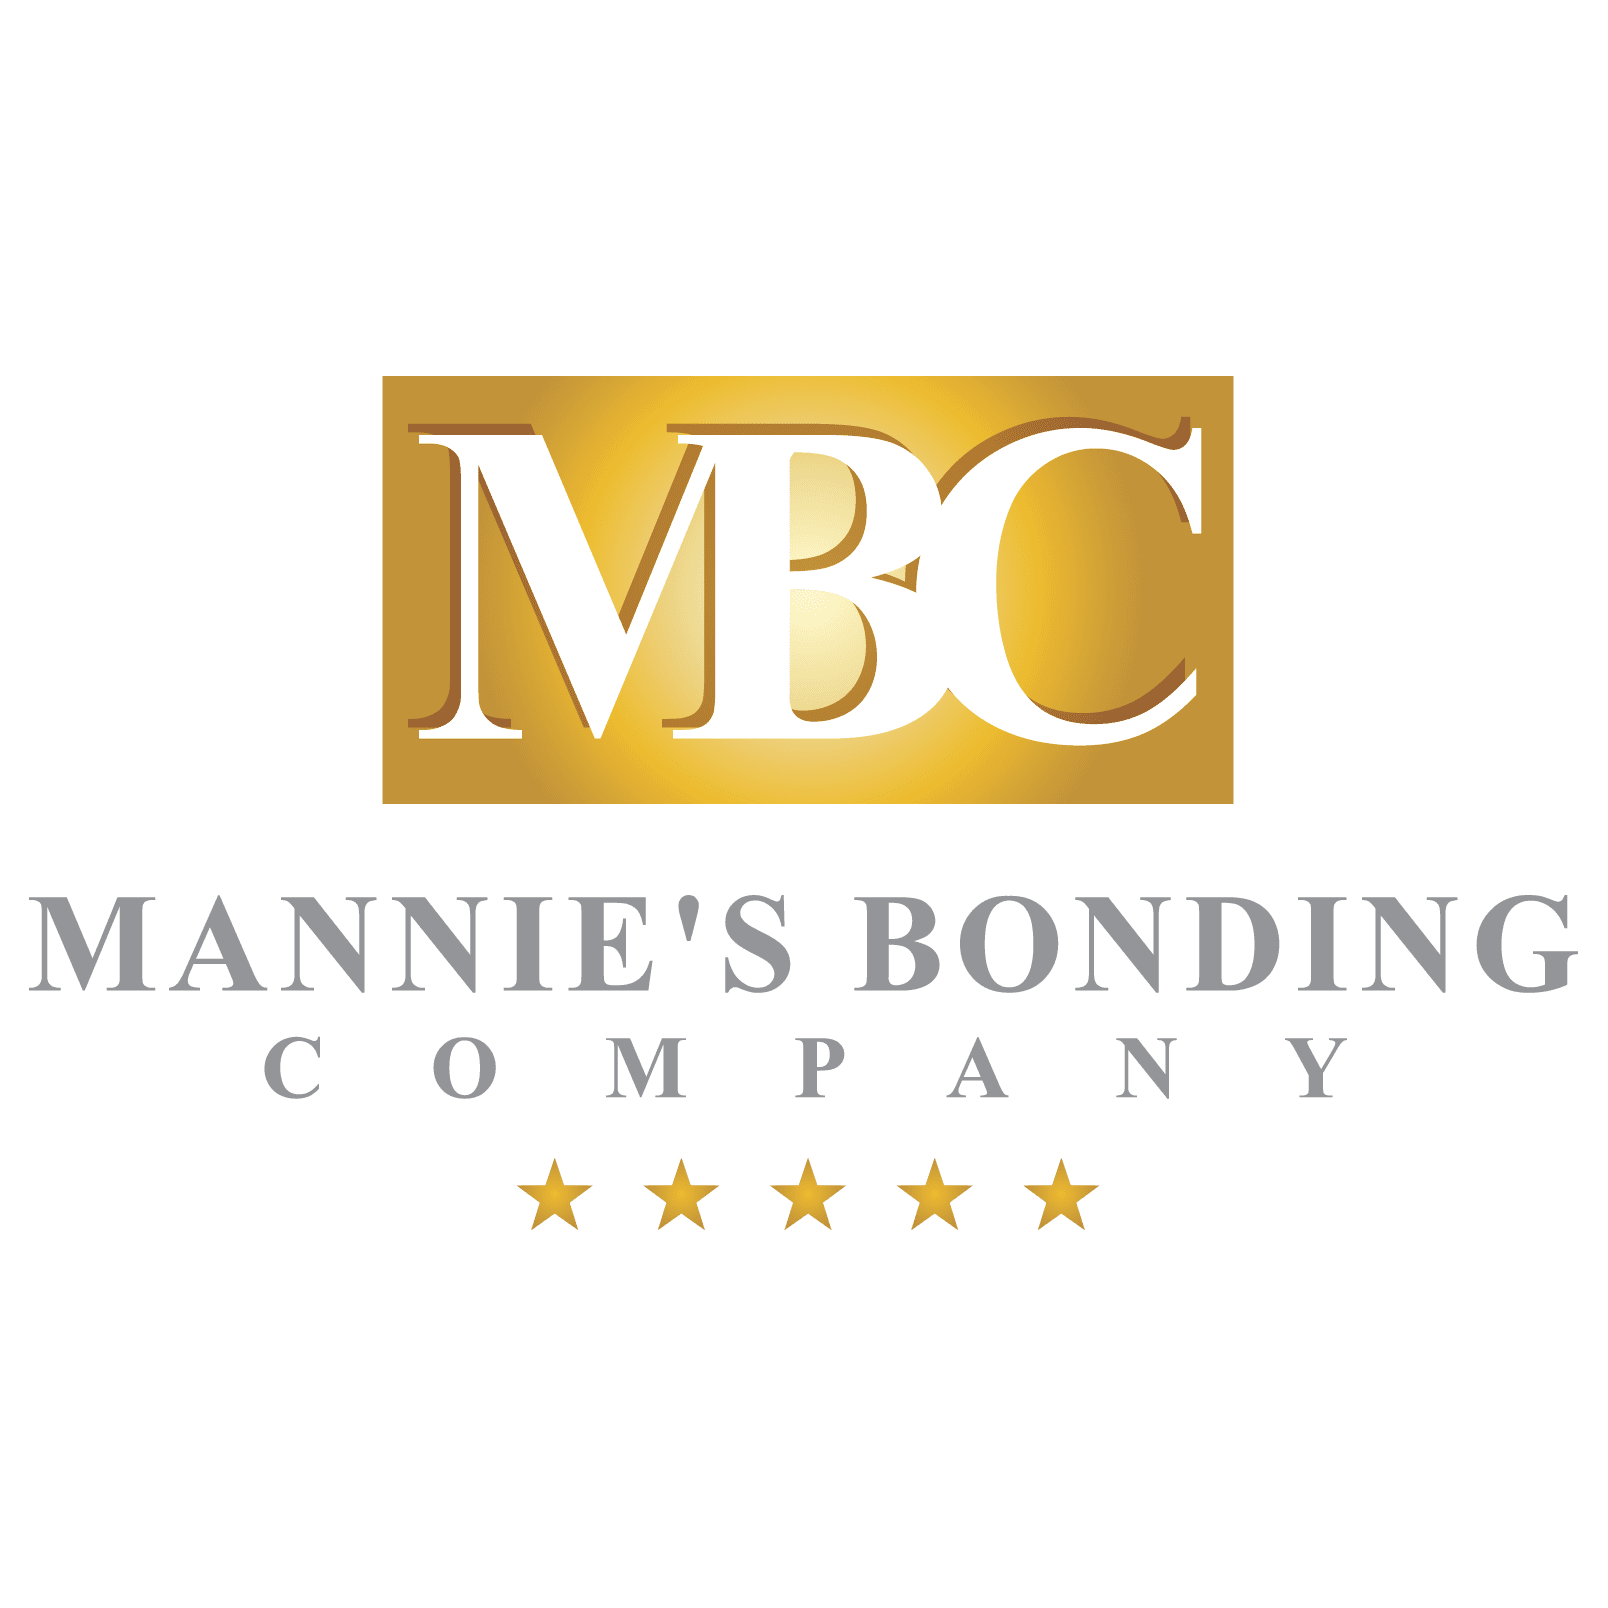 Mannie's Bonding Co.